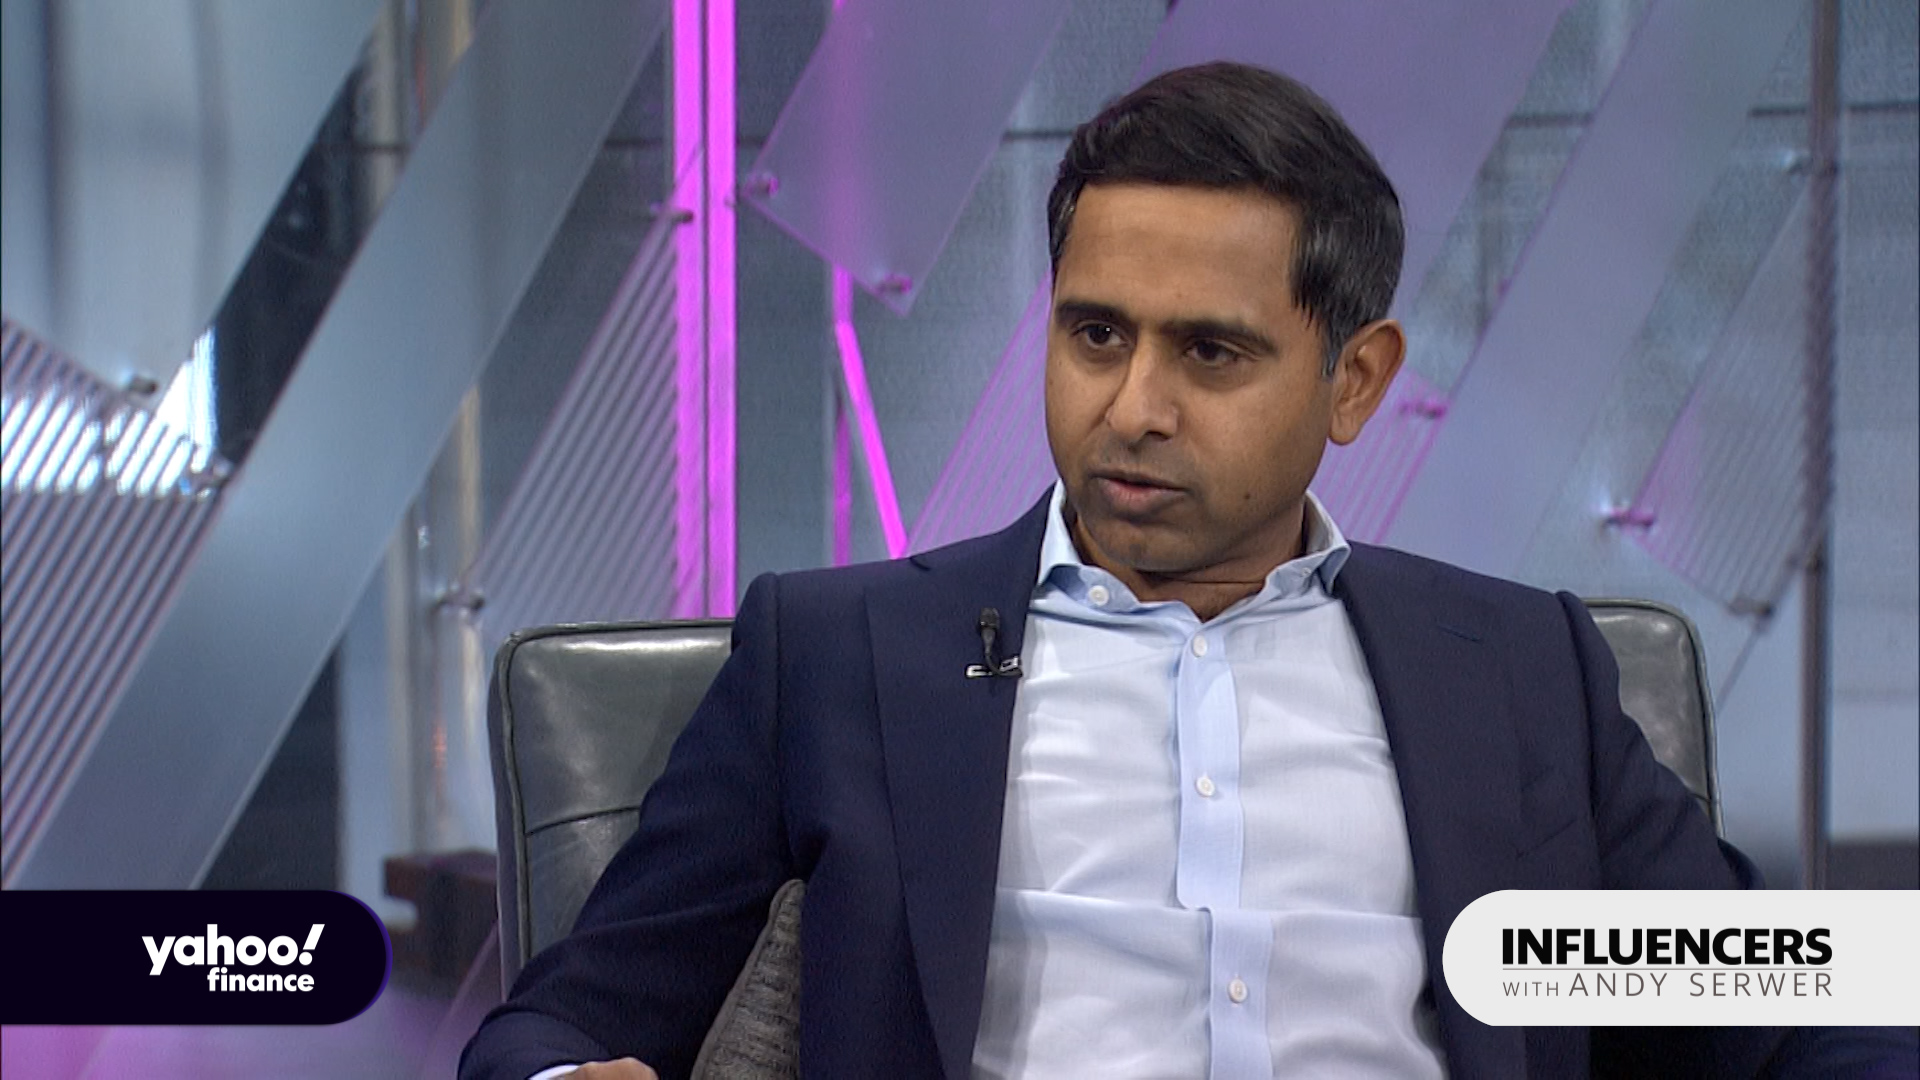 J2 Global CEO Vivek Shah joins Influencers with Andy Serwer.